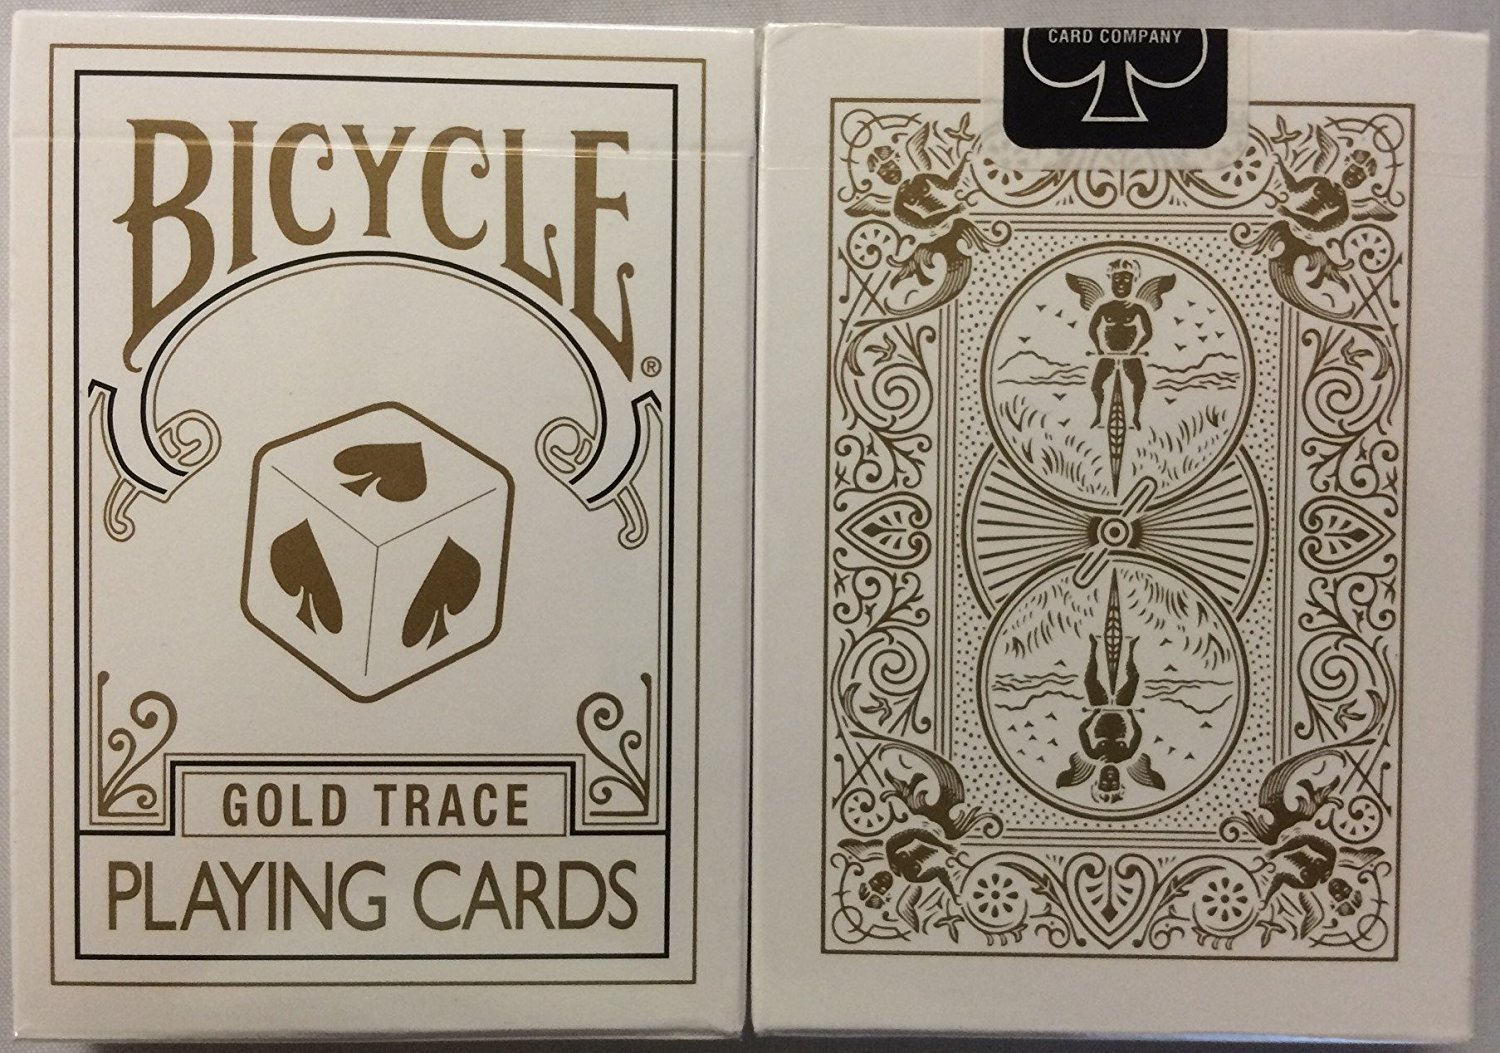 Bicycle Gold Trace Deck Playing Cards US Playing Card SG/_B0060NJF1Q/_US